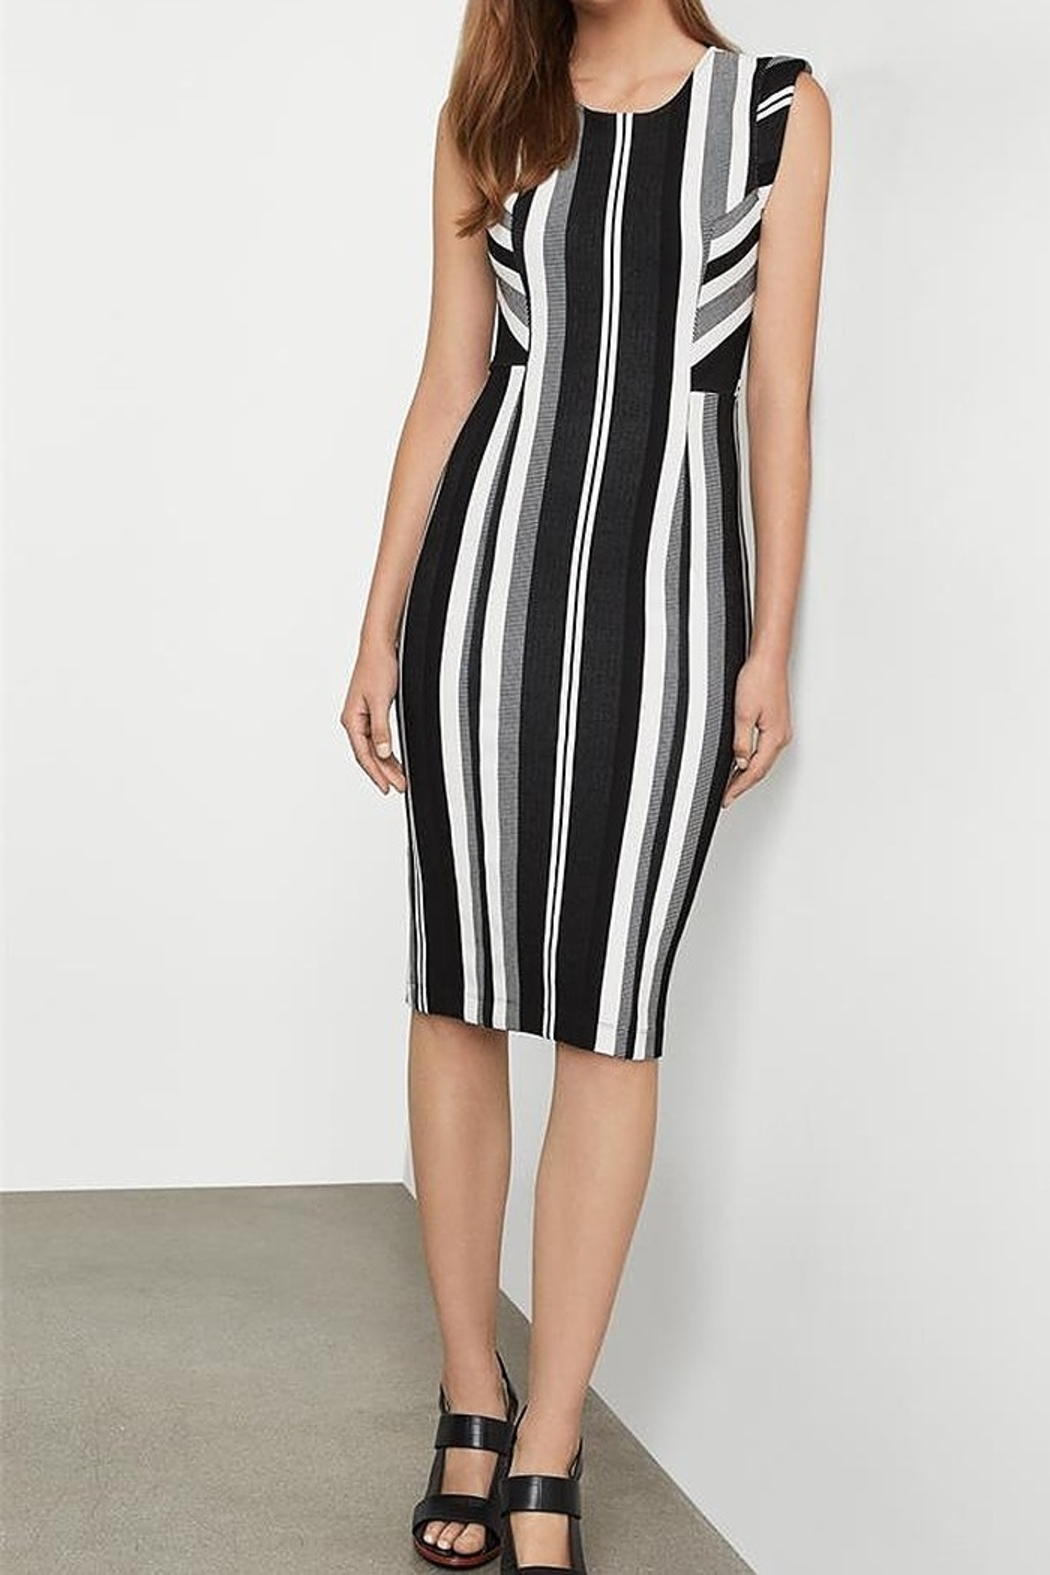 BCBG MAXAZRIA Vertical Striped Sheath Dress - Front Cropped Image